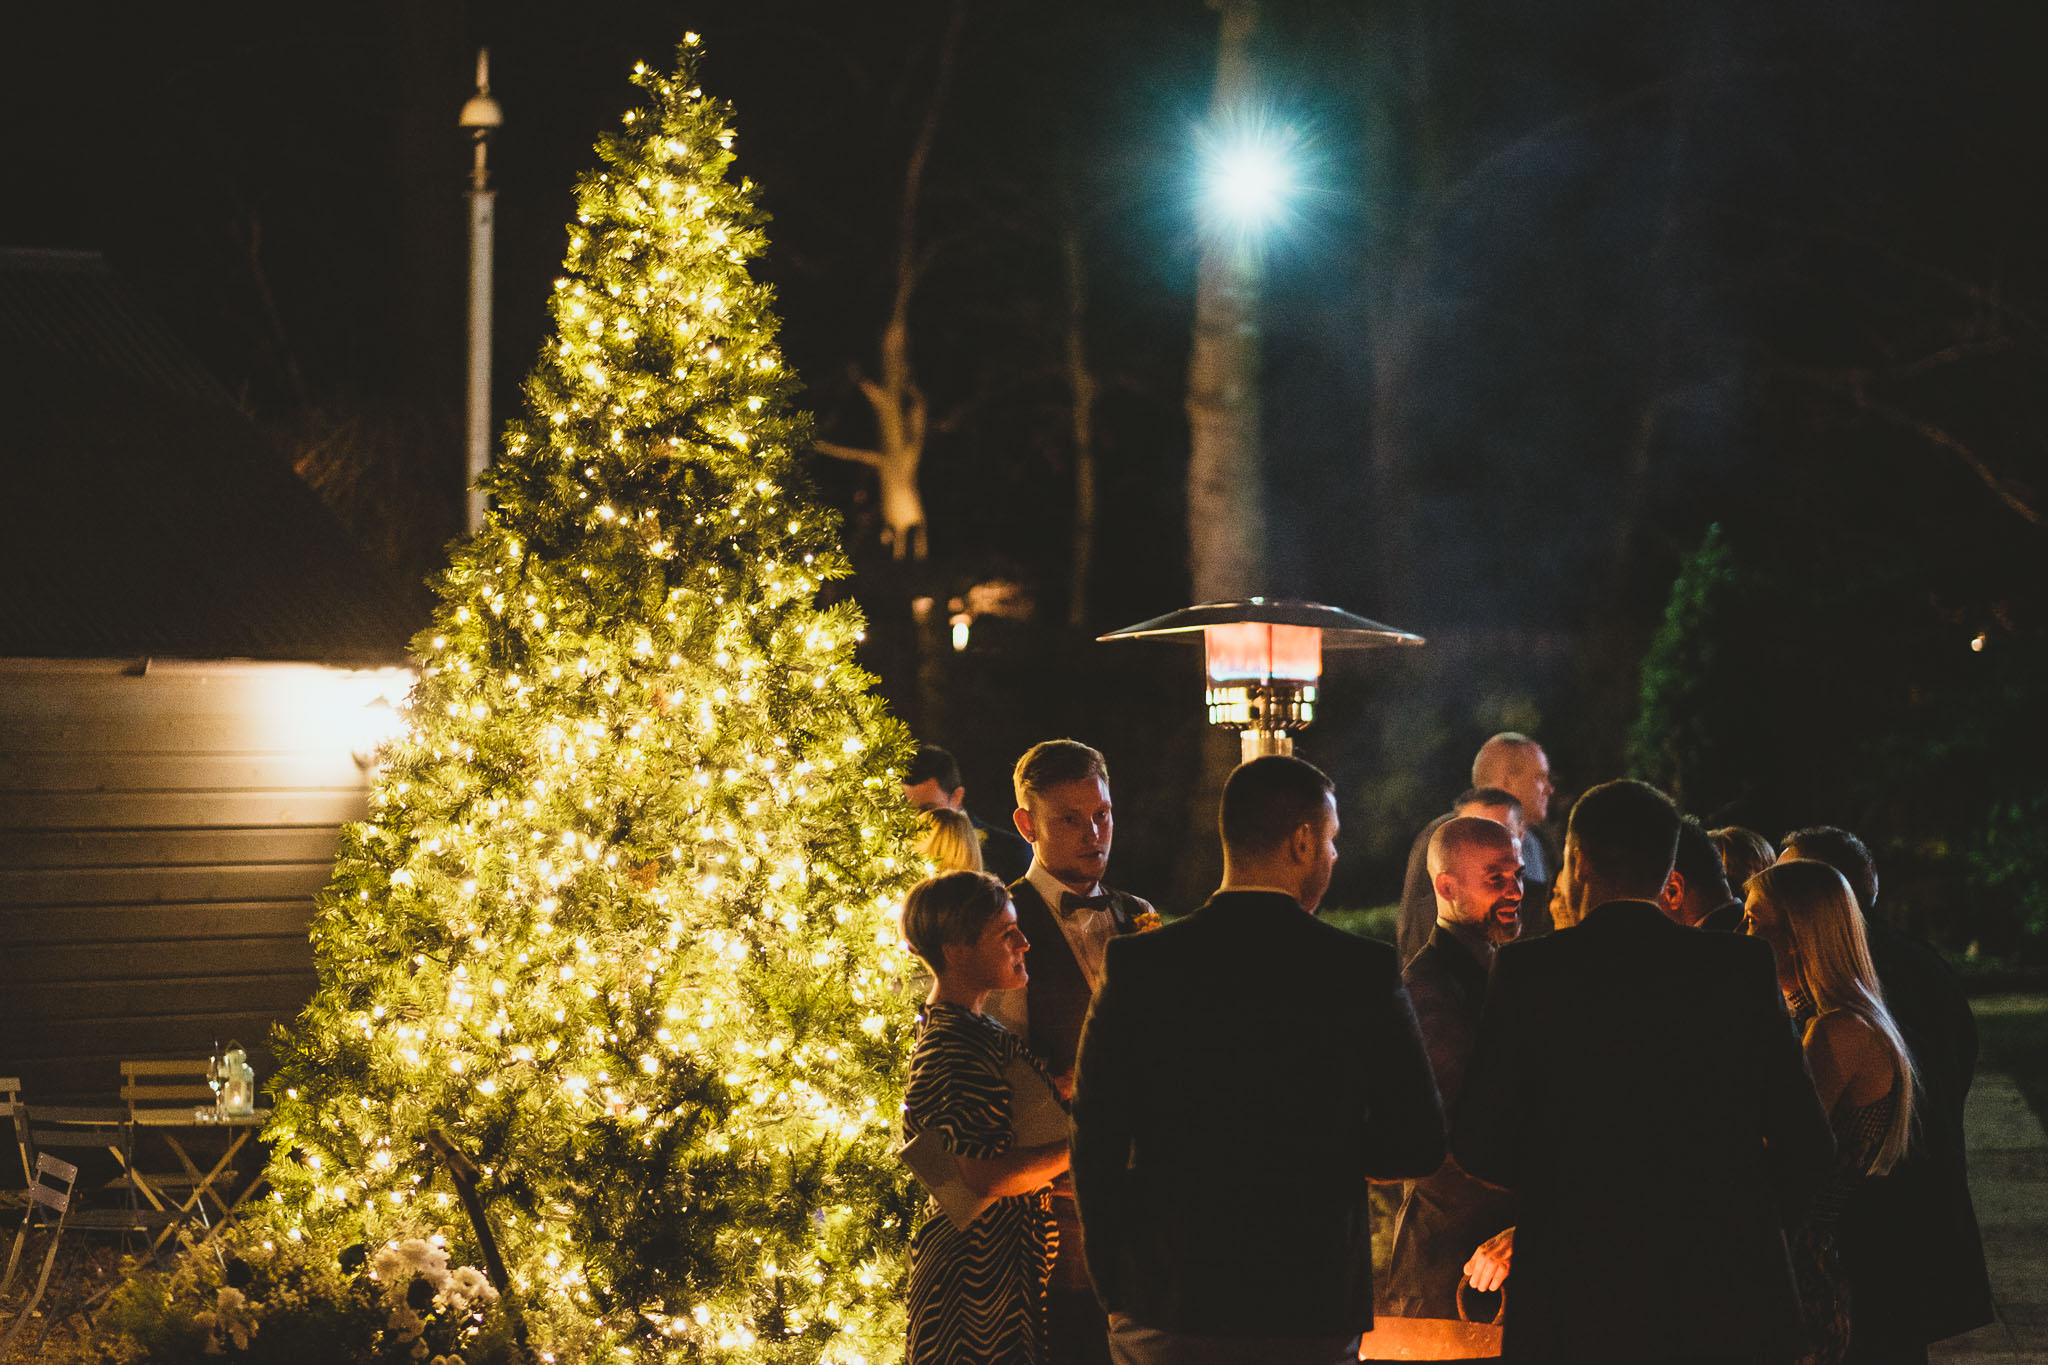 Wedding guests chat in the courtyard of The Parlour at Blagdon lit by Christmas tree